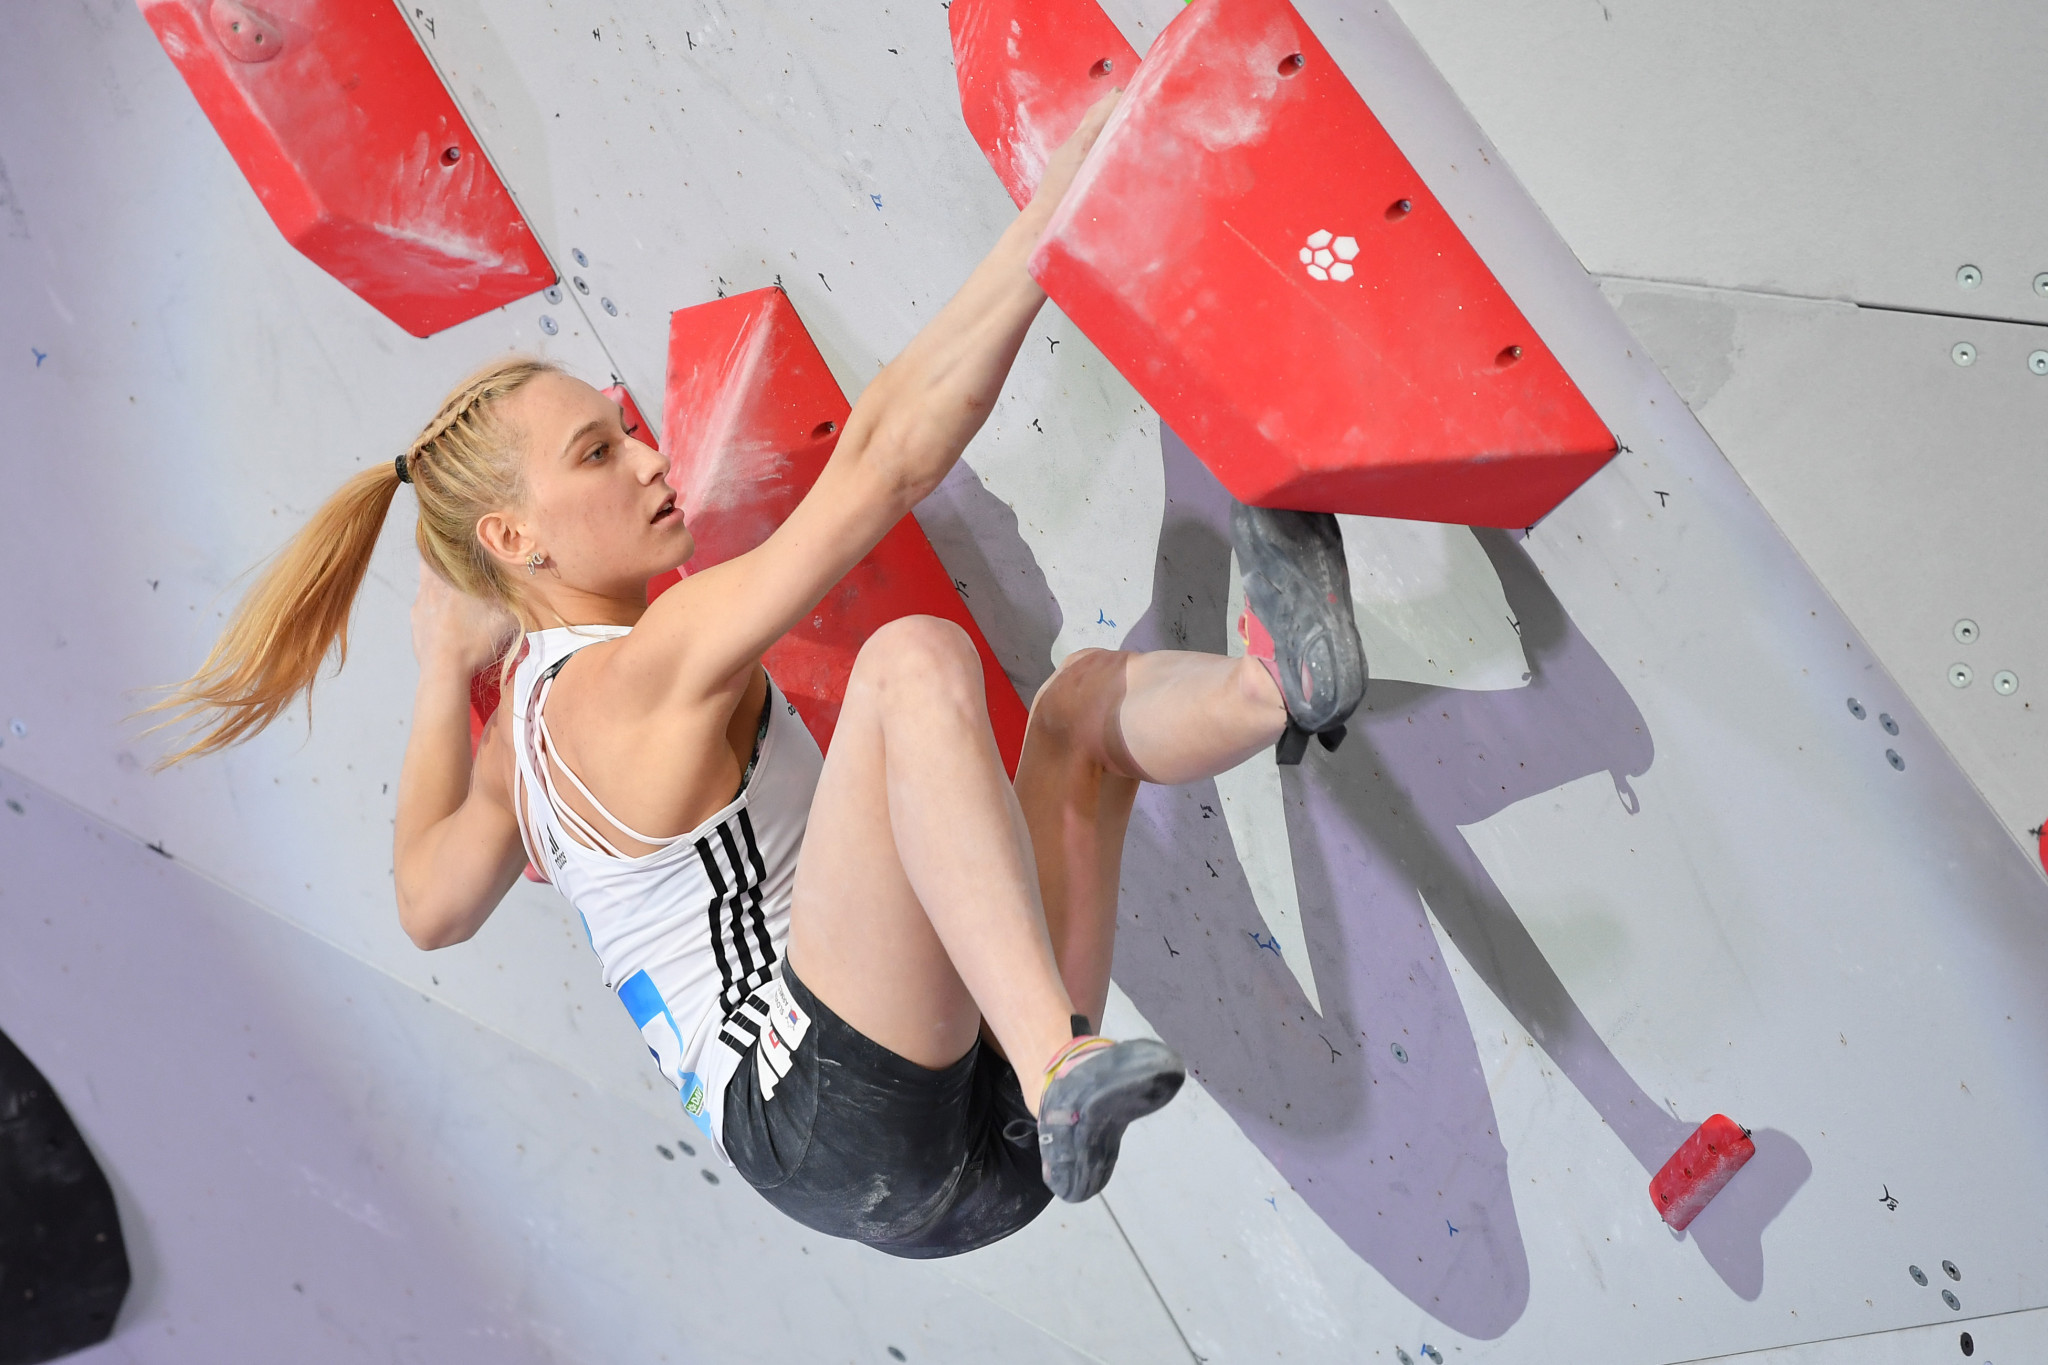 Janja Garnbret has won the IFSC women's bouldering title for the second year in succession ©Getty Images